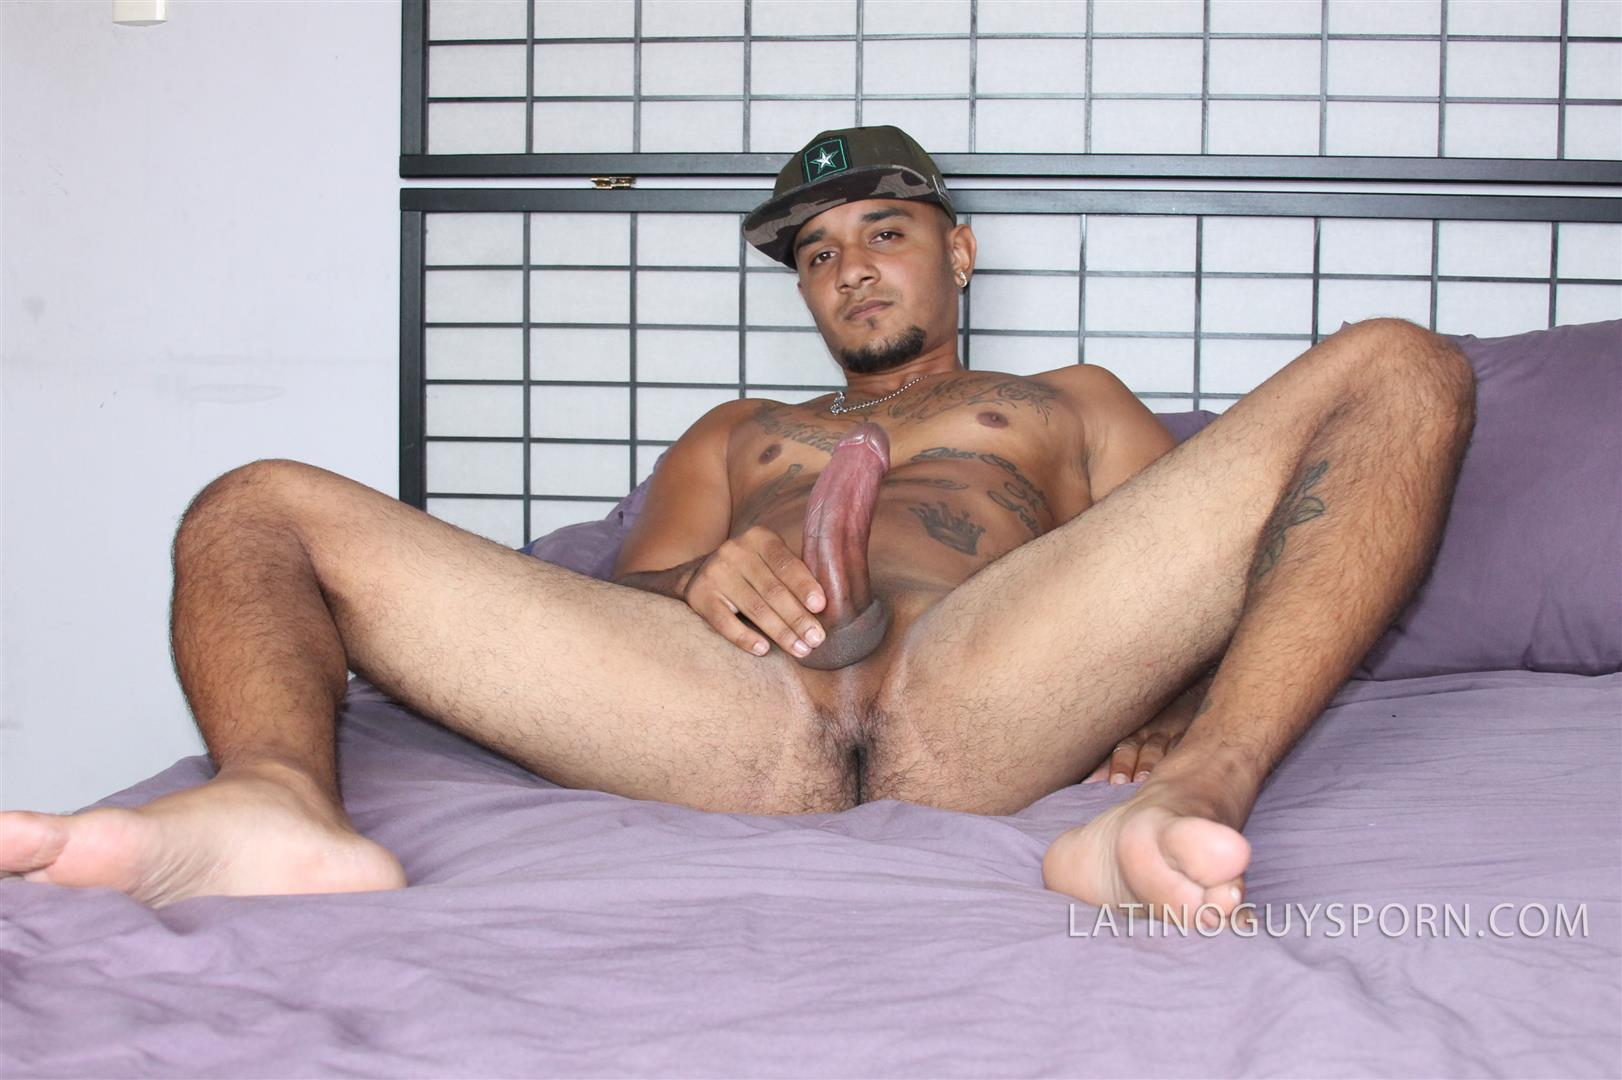 Latino-Guys-Porn-Banshee-and-Italo-Thick-Dick-Latin-Guy-blowjob-video-6 Hot Latino Stud Gets His Thick Dick Sucked and Serviced